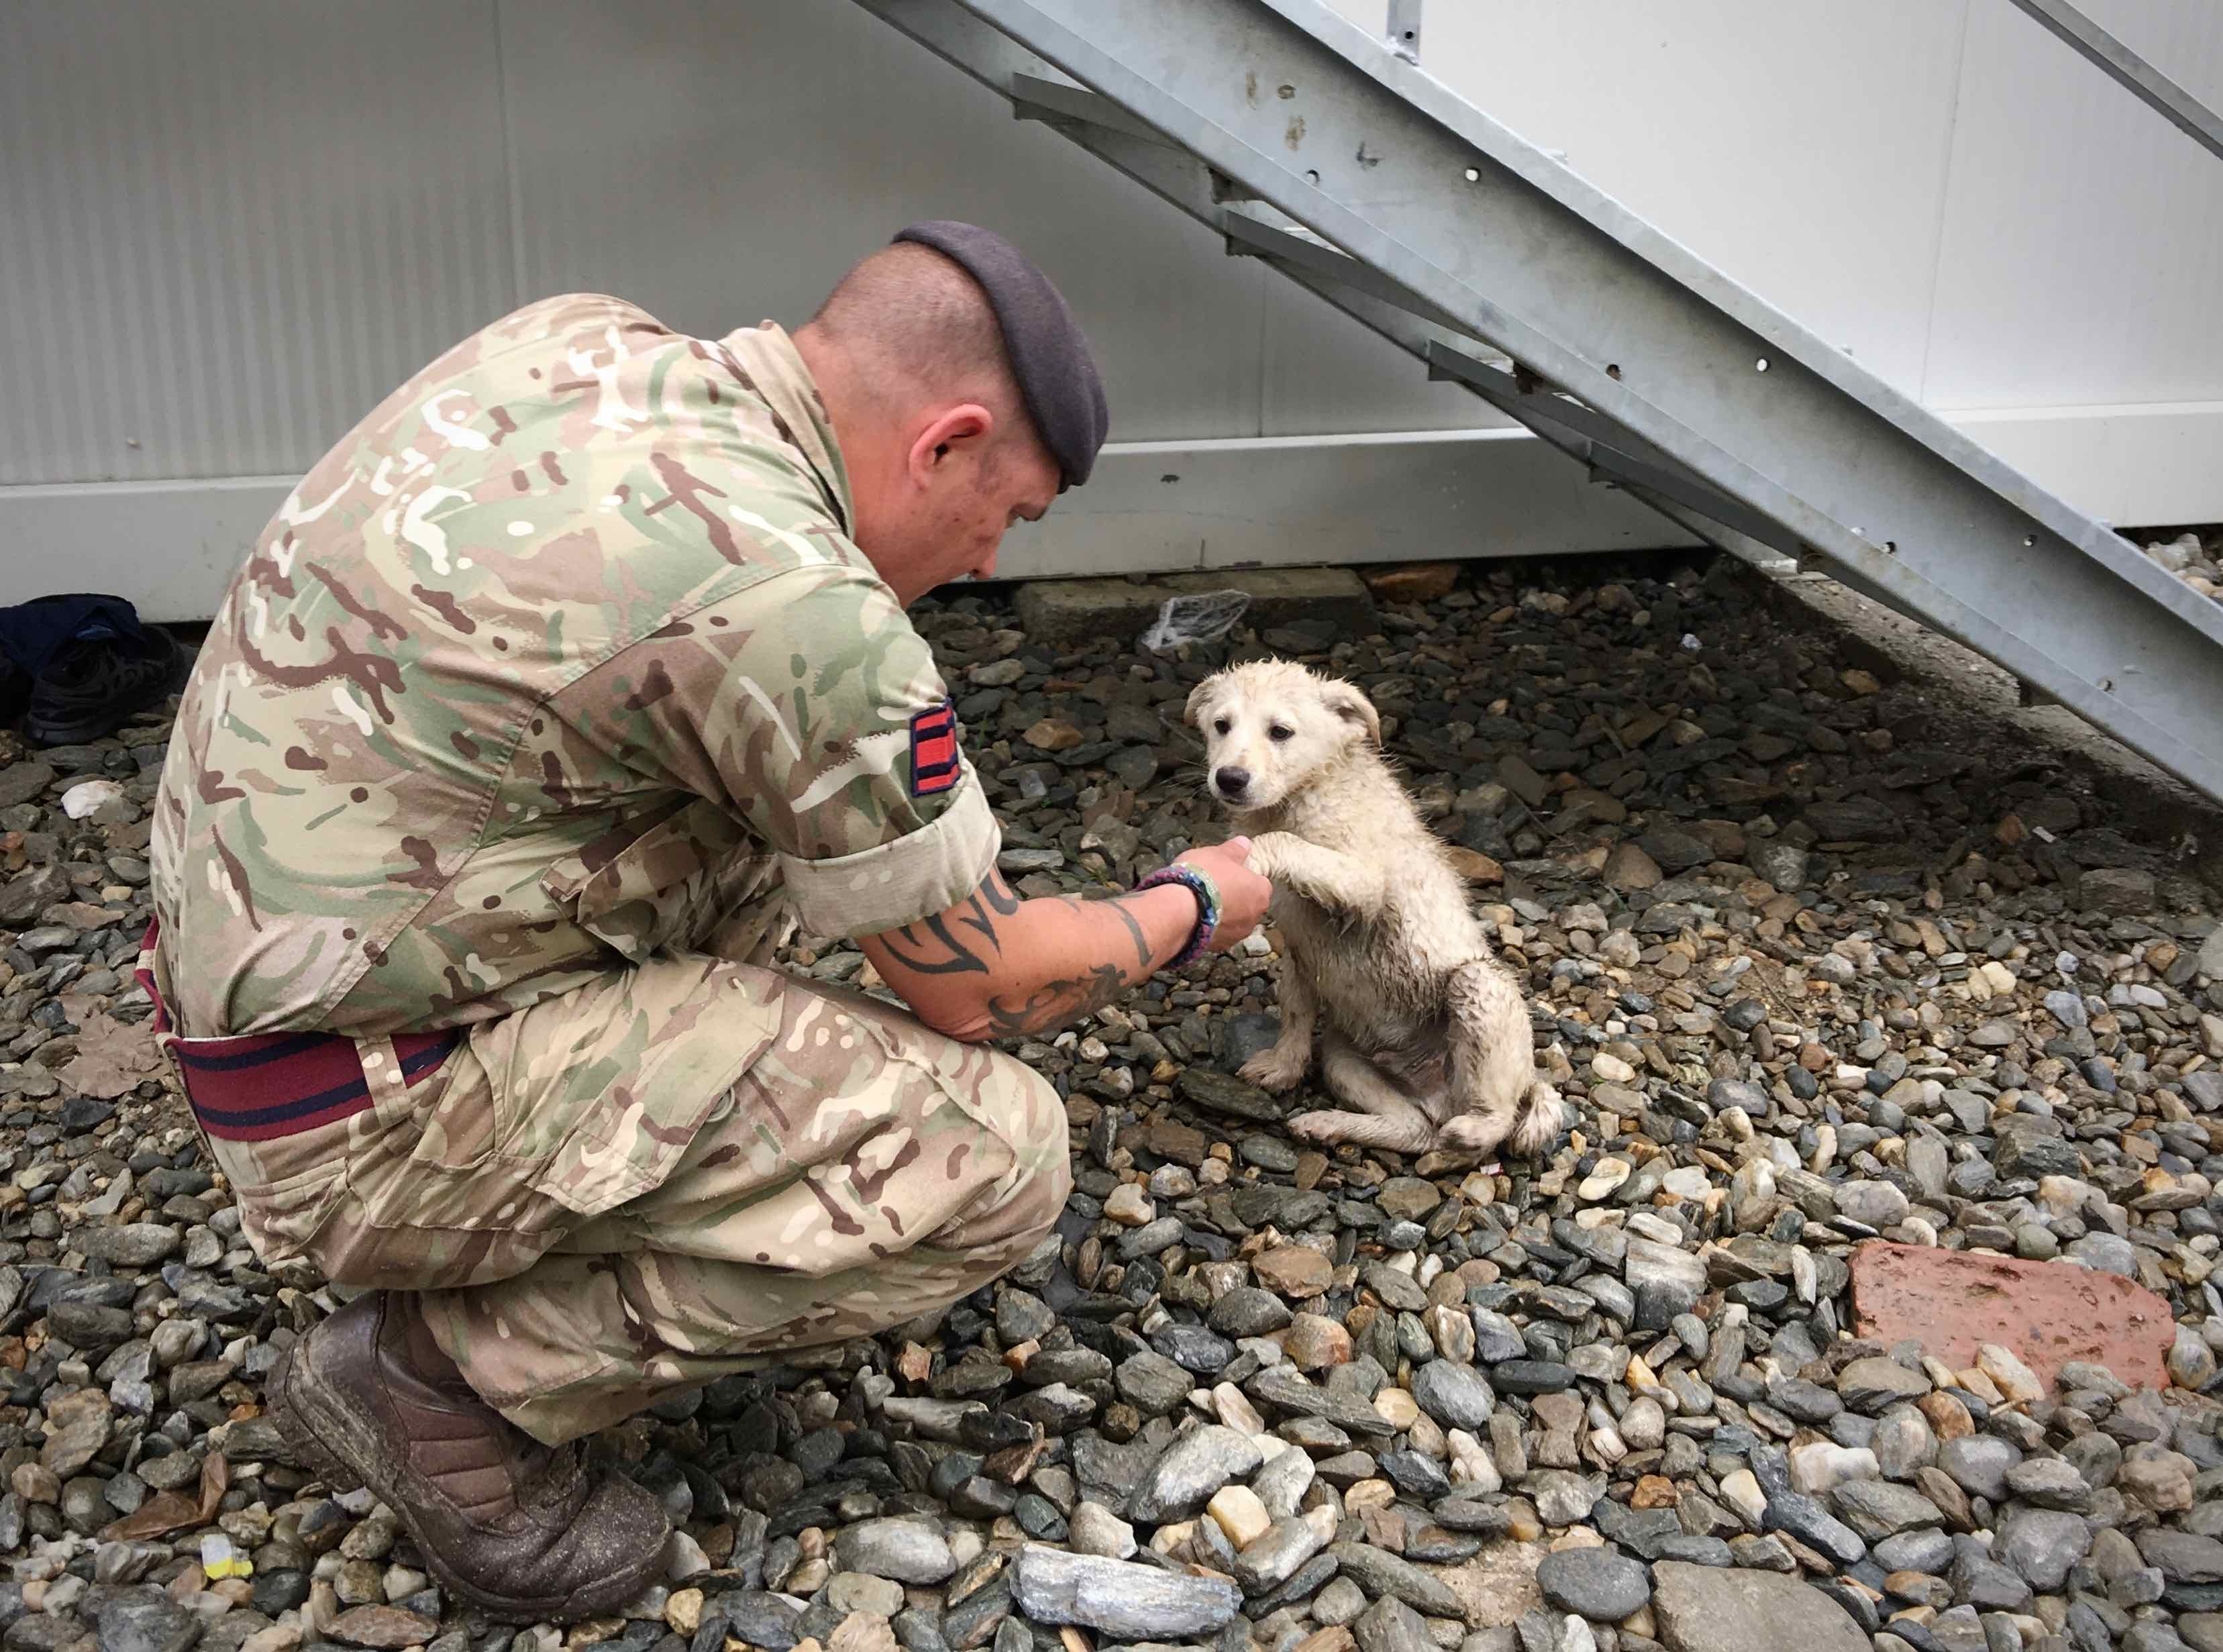 A member of Britain's Armed Forces takes a break to pet a local puppy while checking out the construction site. The Joint National Training Center in Cincu, Romania, is located among many farms, so members of the military have the opportunity to work near animals from those farms. (Jen Judson/Staff)